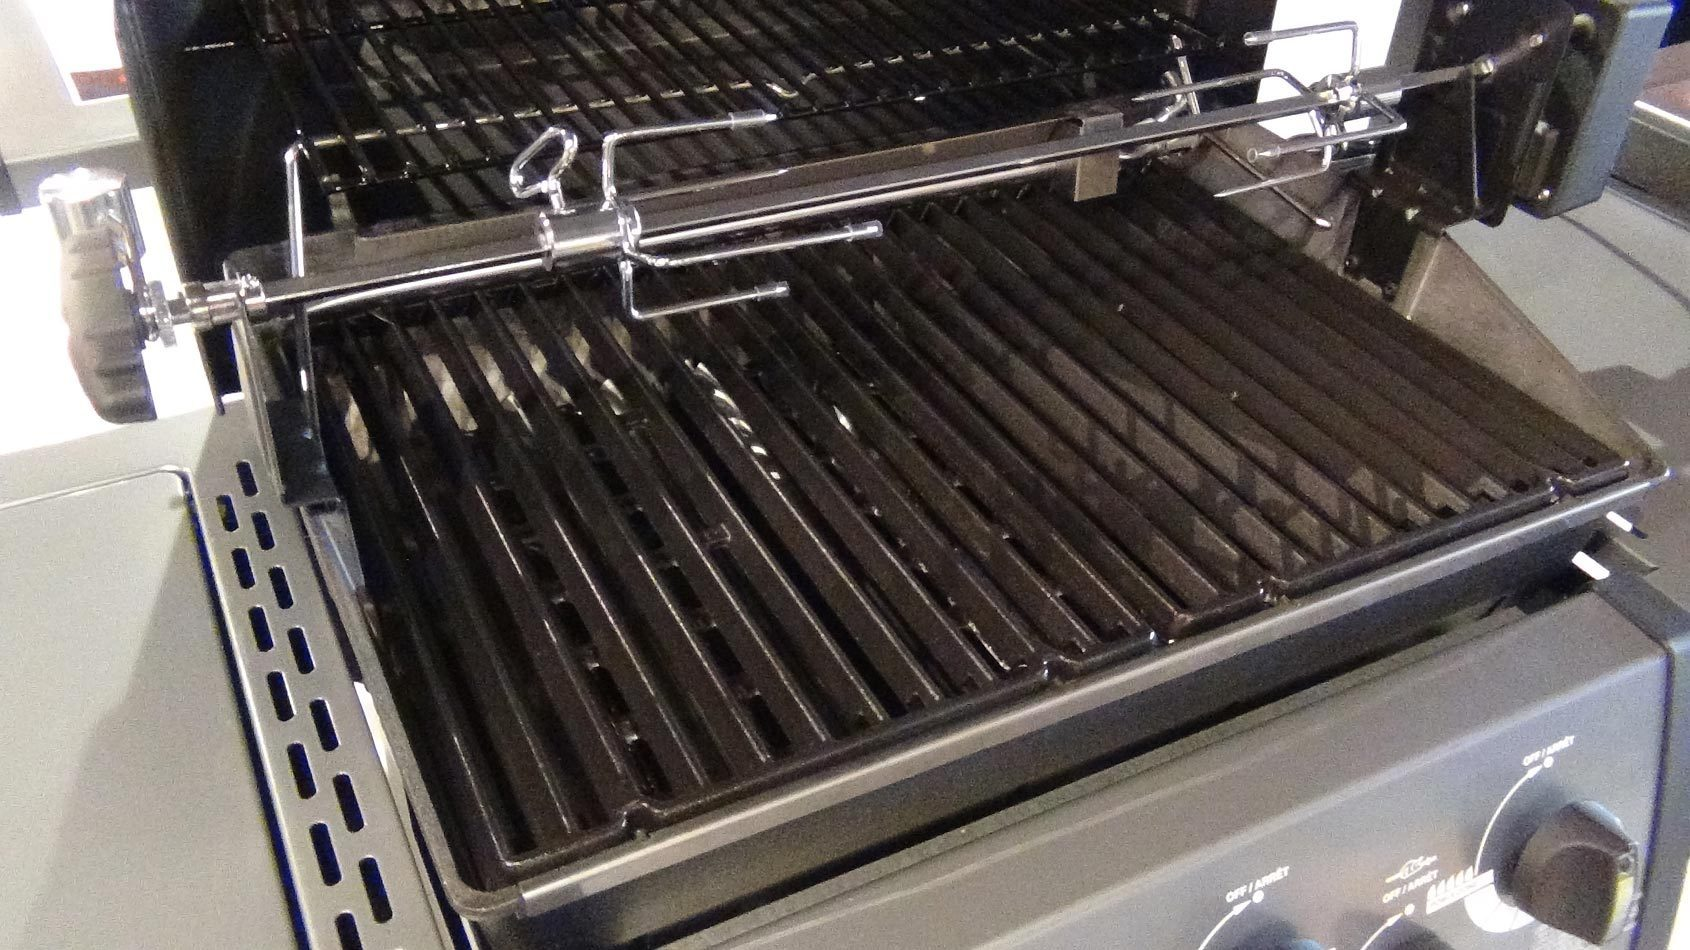 Whether you want gas, charcoal, or electric, we've found the perfect grills to fit your budget and your backyard. These are the best grills you can buy. — Our editors review and recommend products to help you buy the stuff you need.